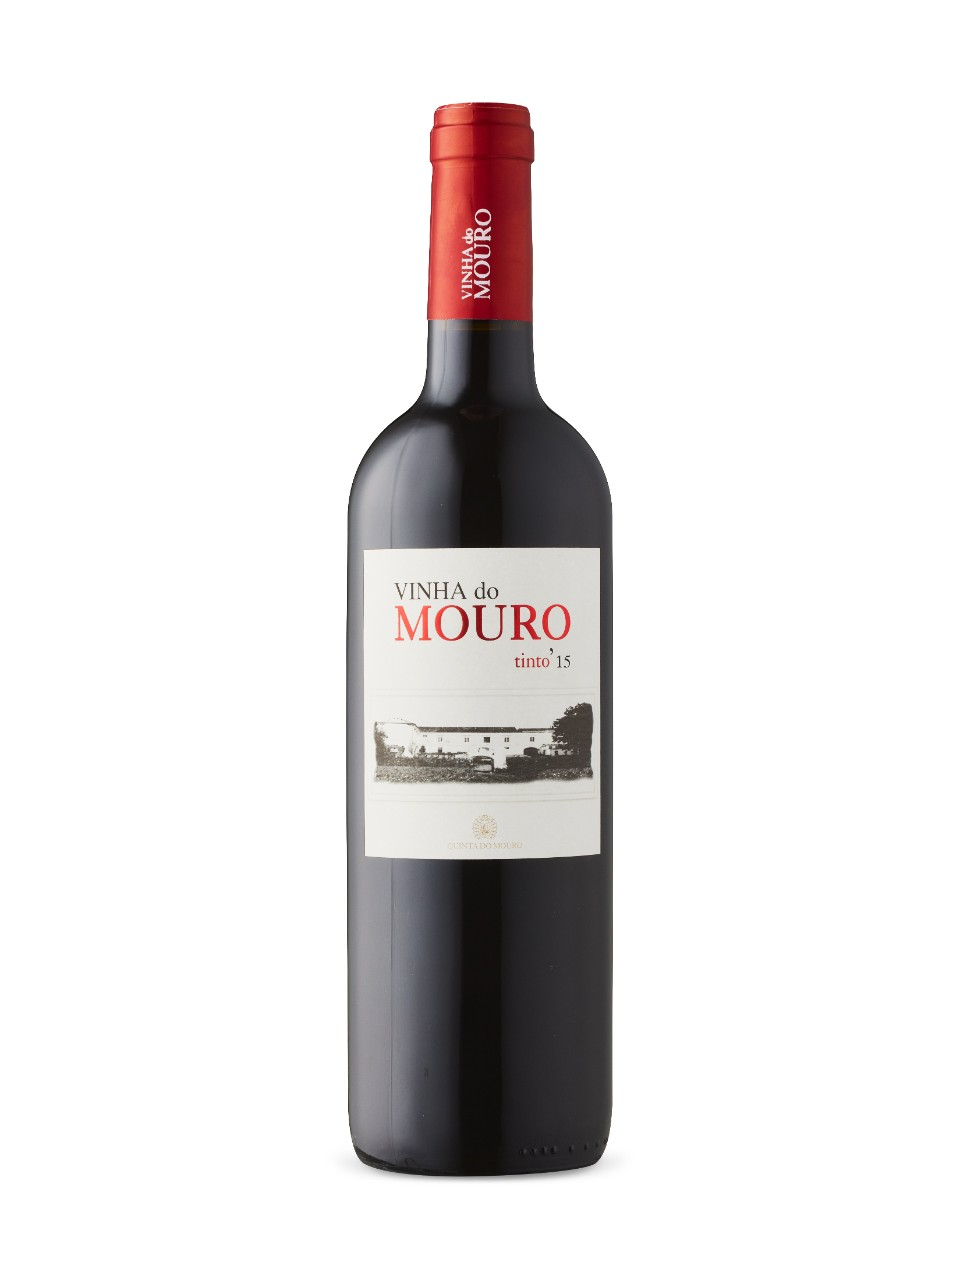 Vinha Do Mouro 2015 from LCBO